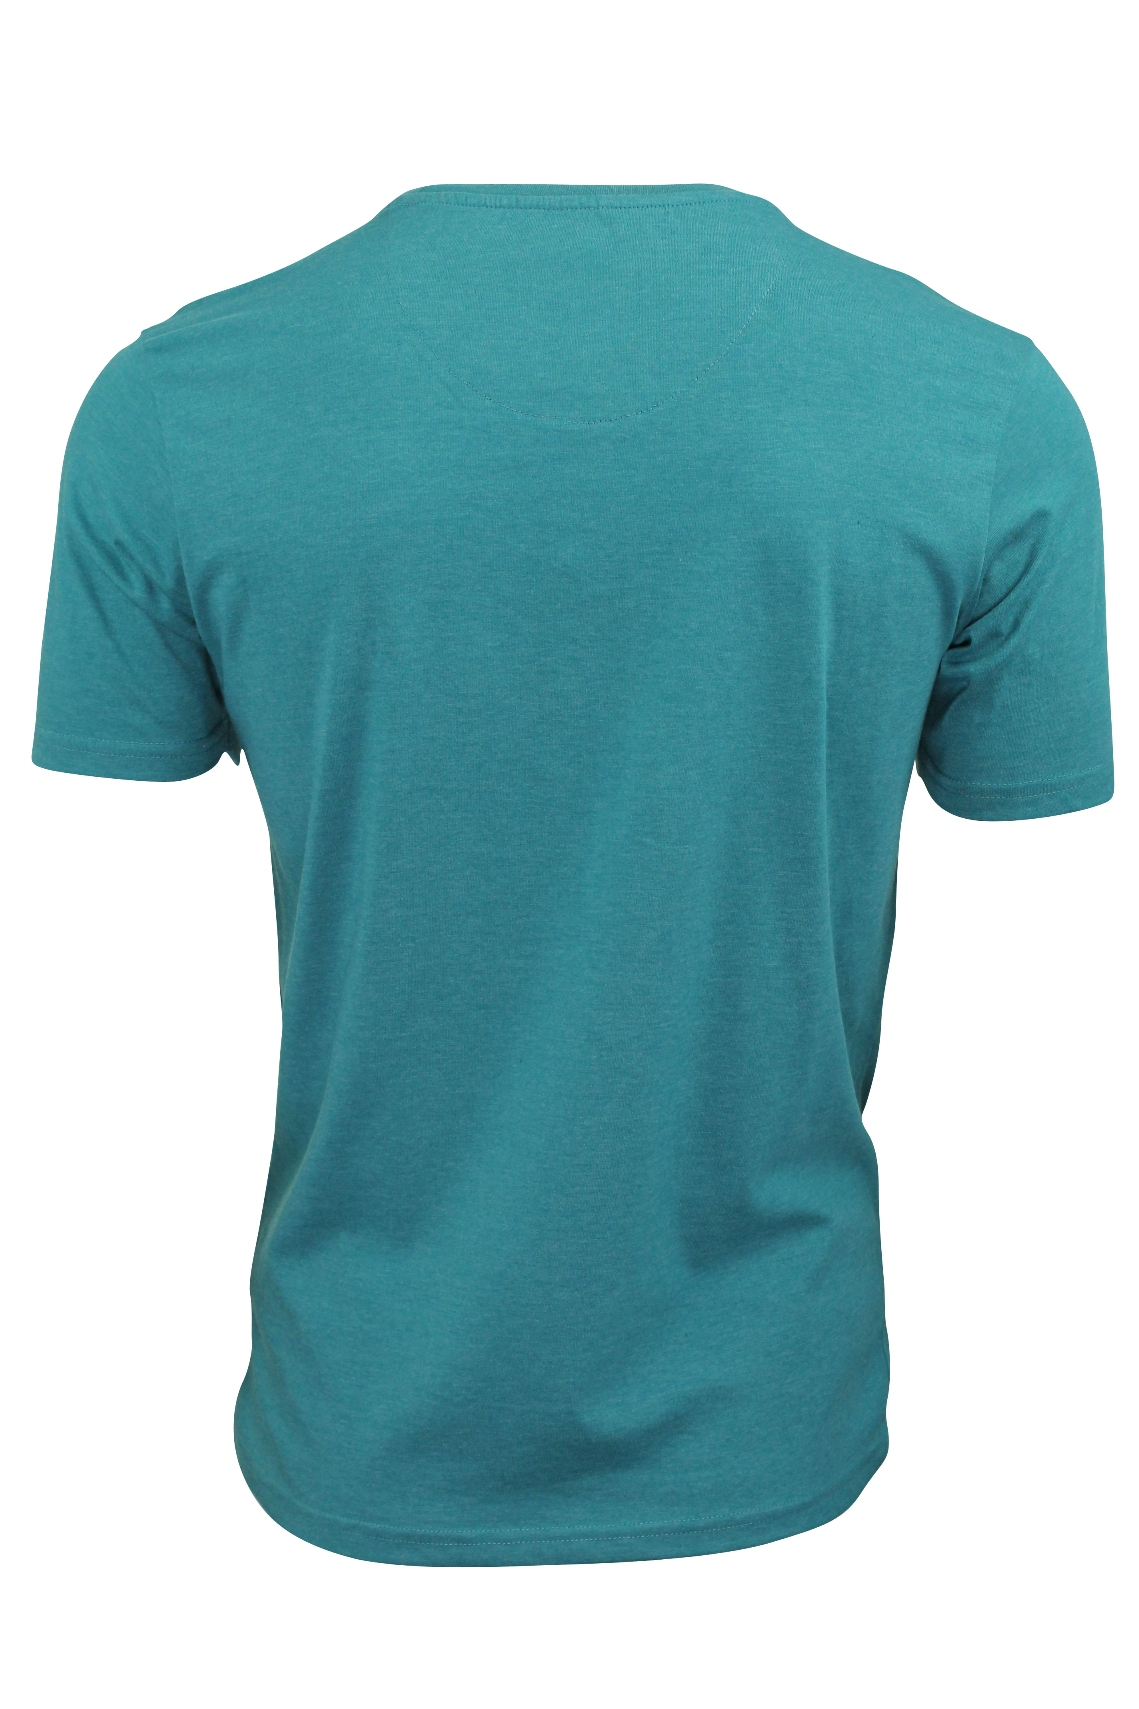 Mens T-Shirt by Smith & Jones 'Rawcliffe' Short Sleeved